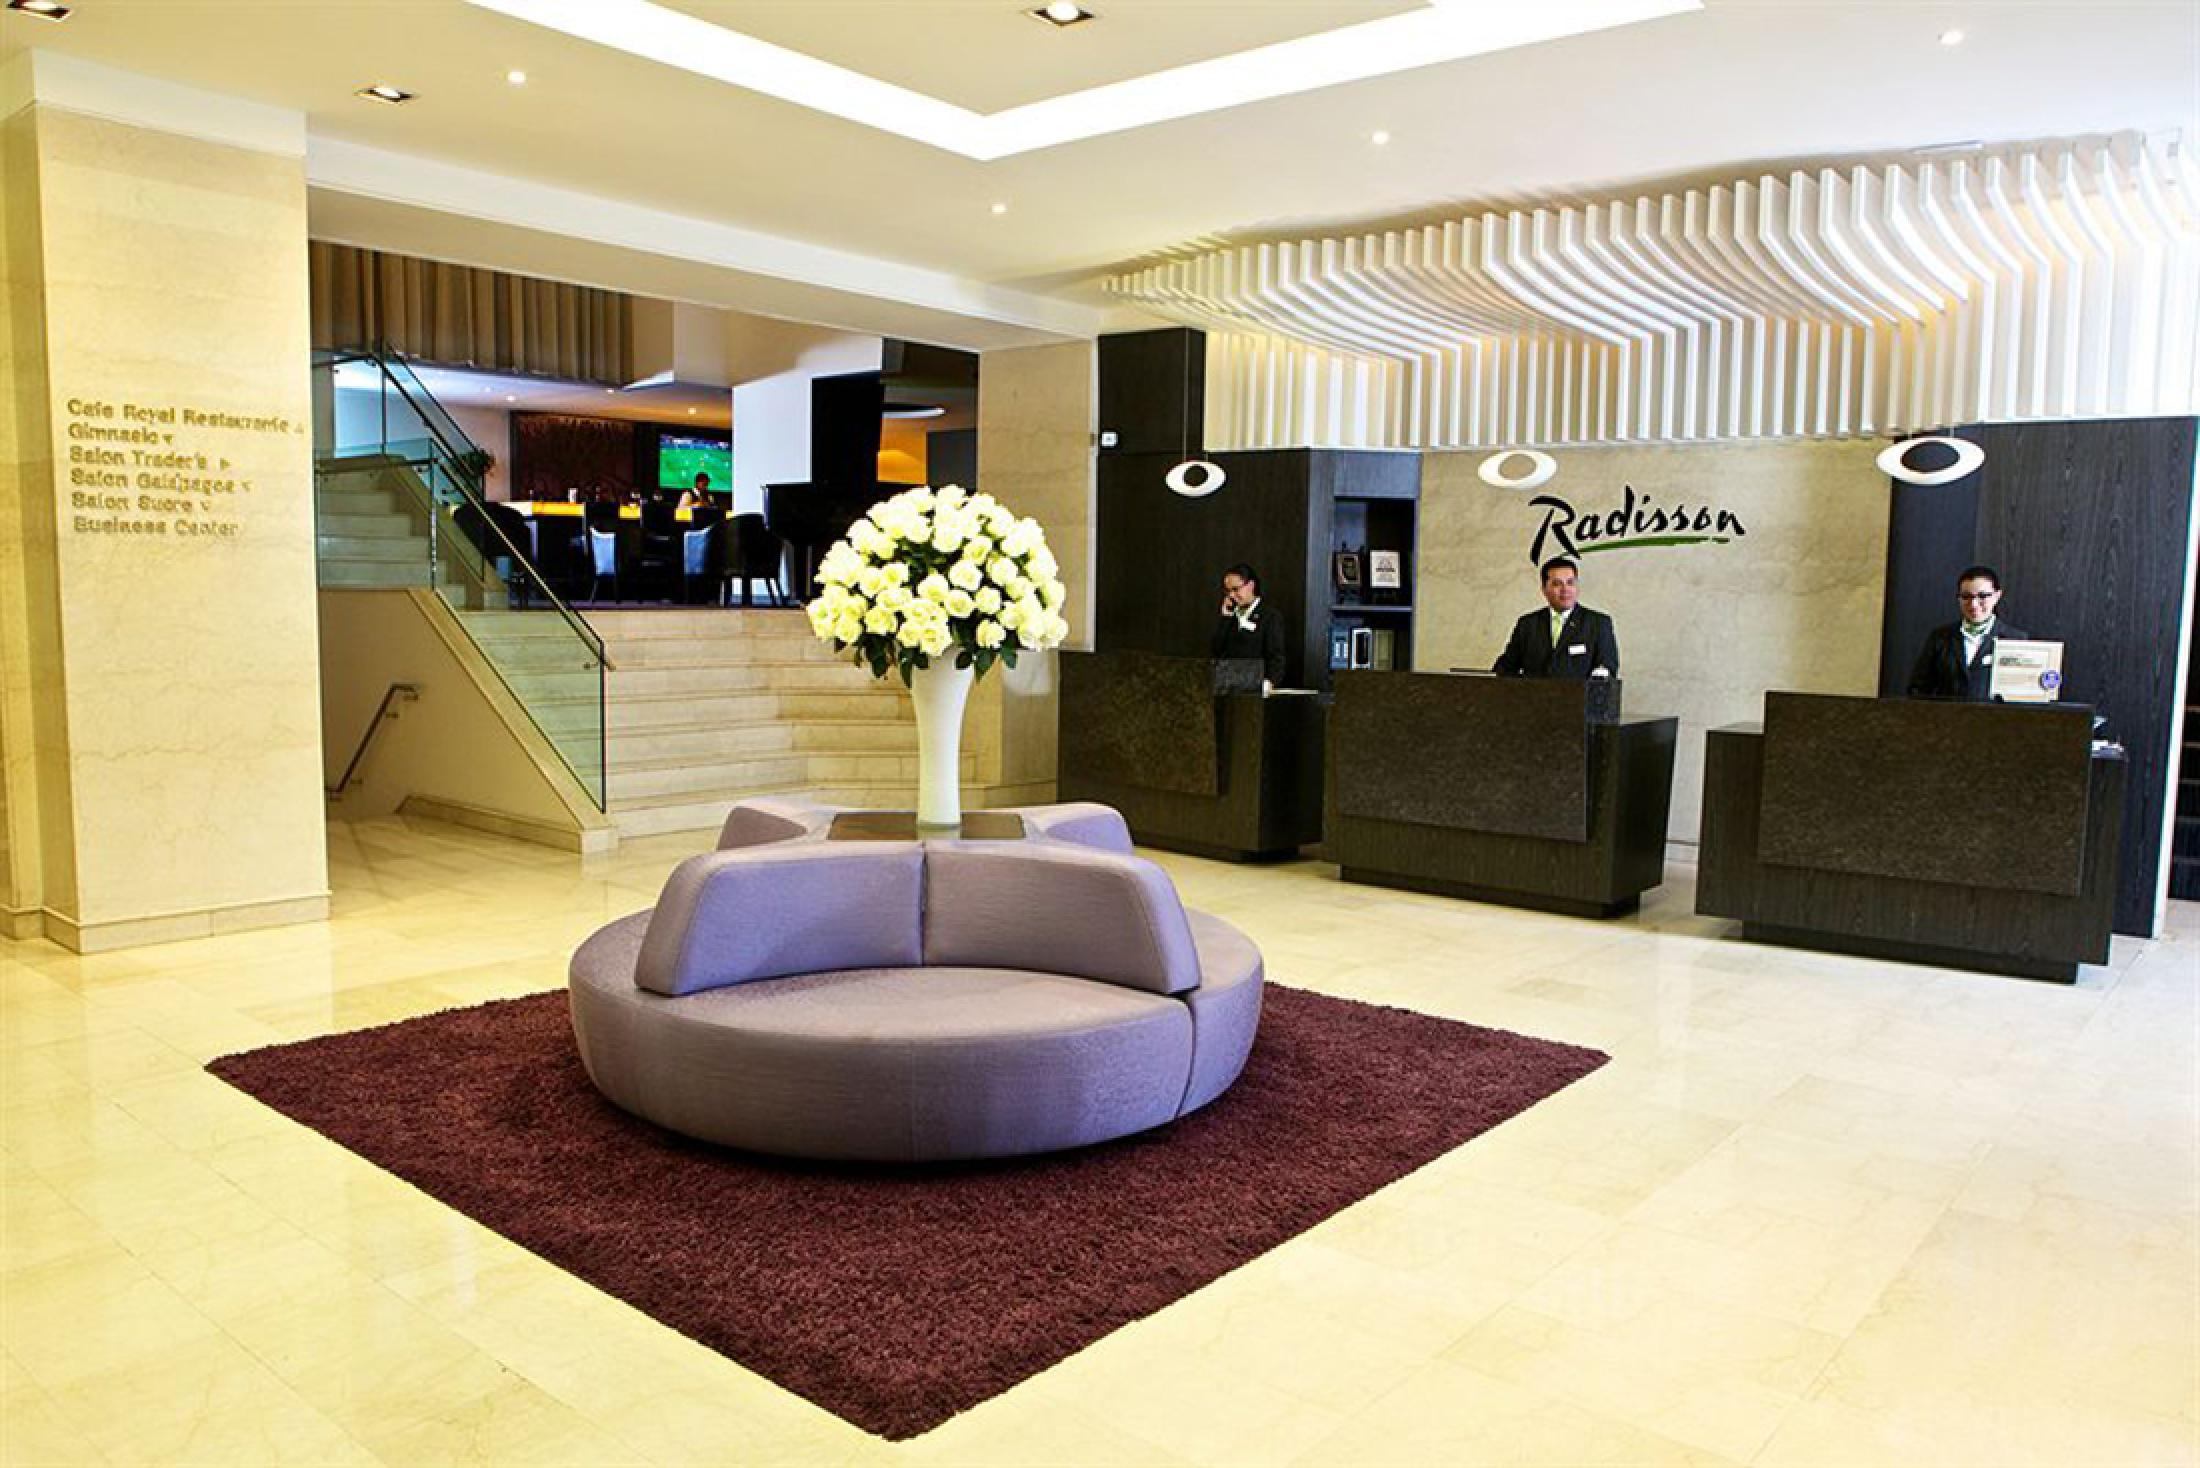 Hotel Radisson Royal Quito